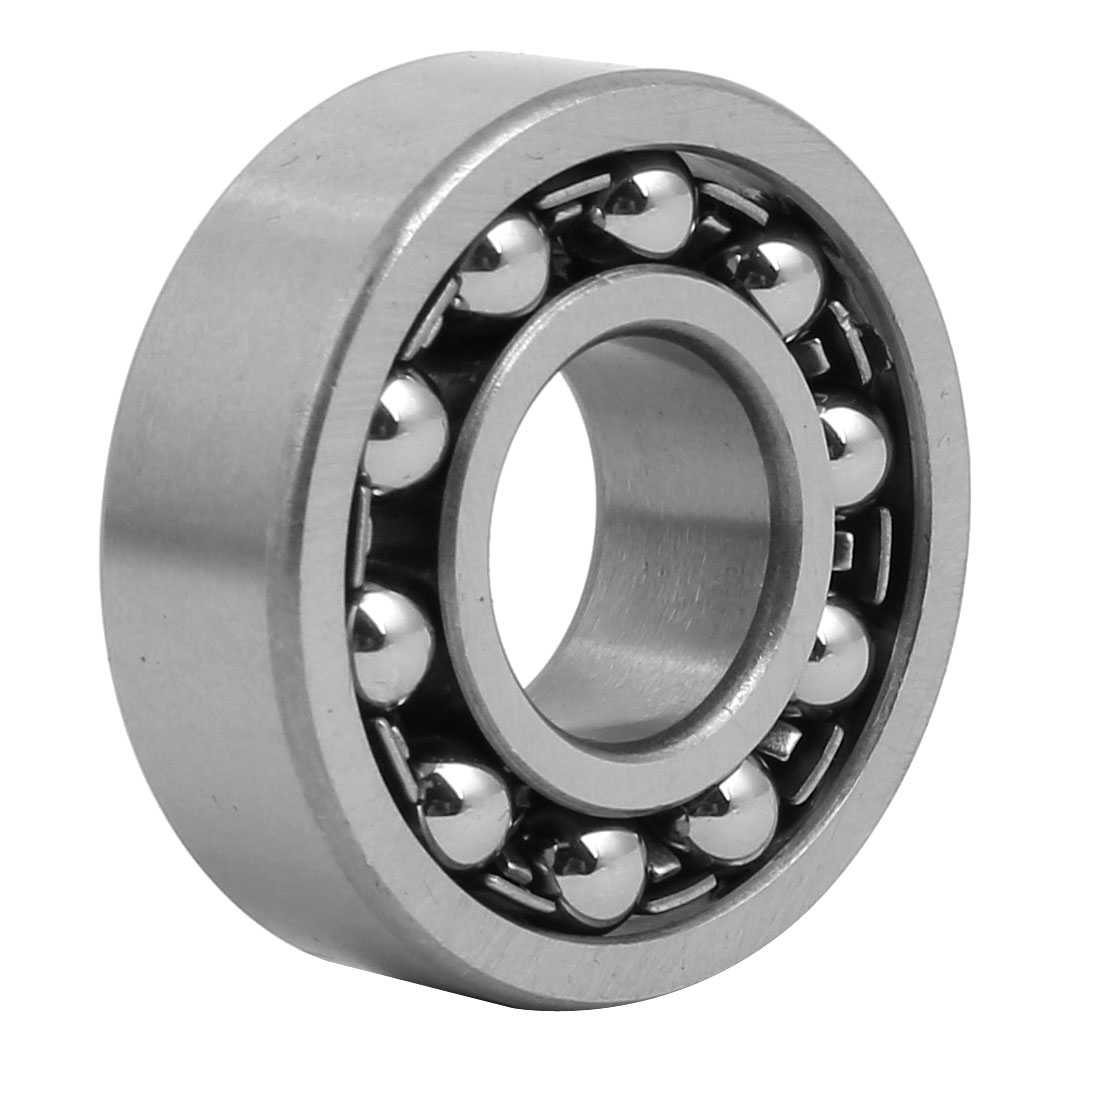 15mmx35mmx11mm Double Row Self Aligning Ball Bearing Silver Gray 1202